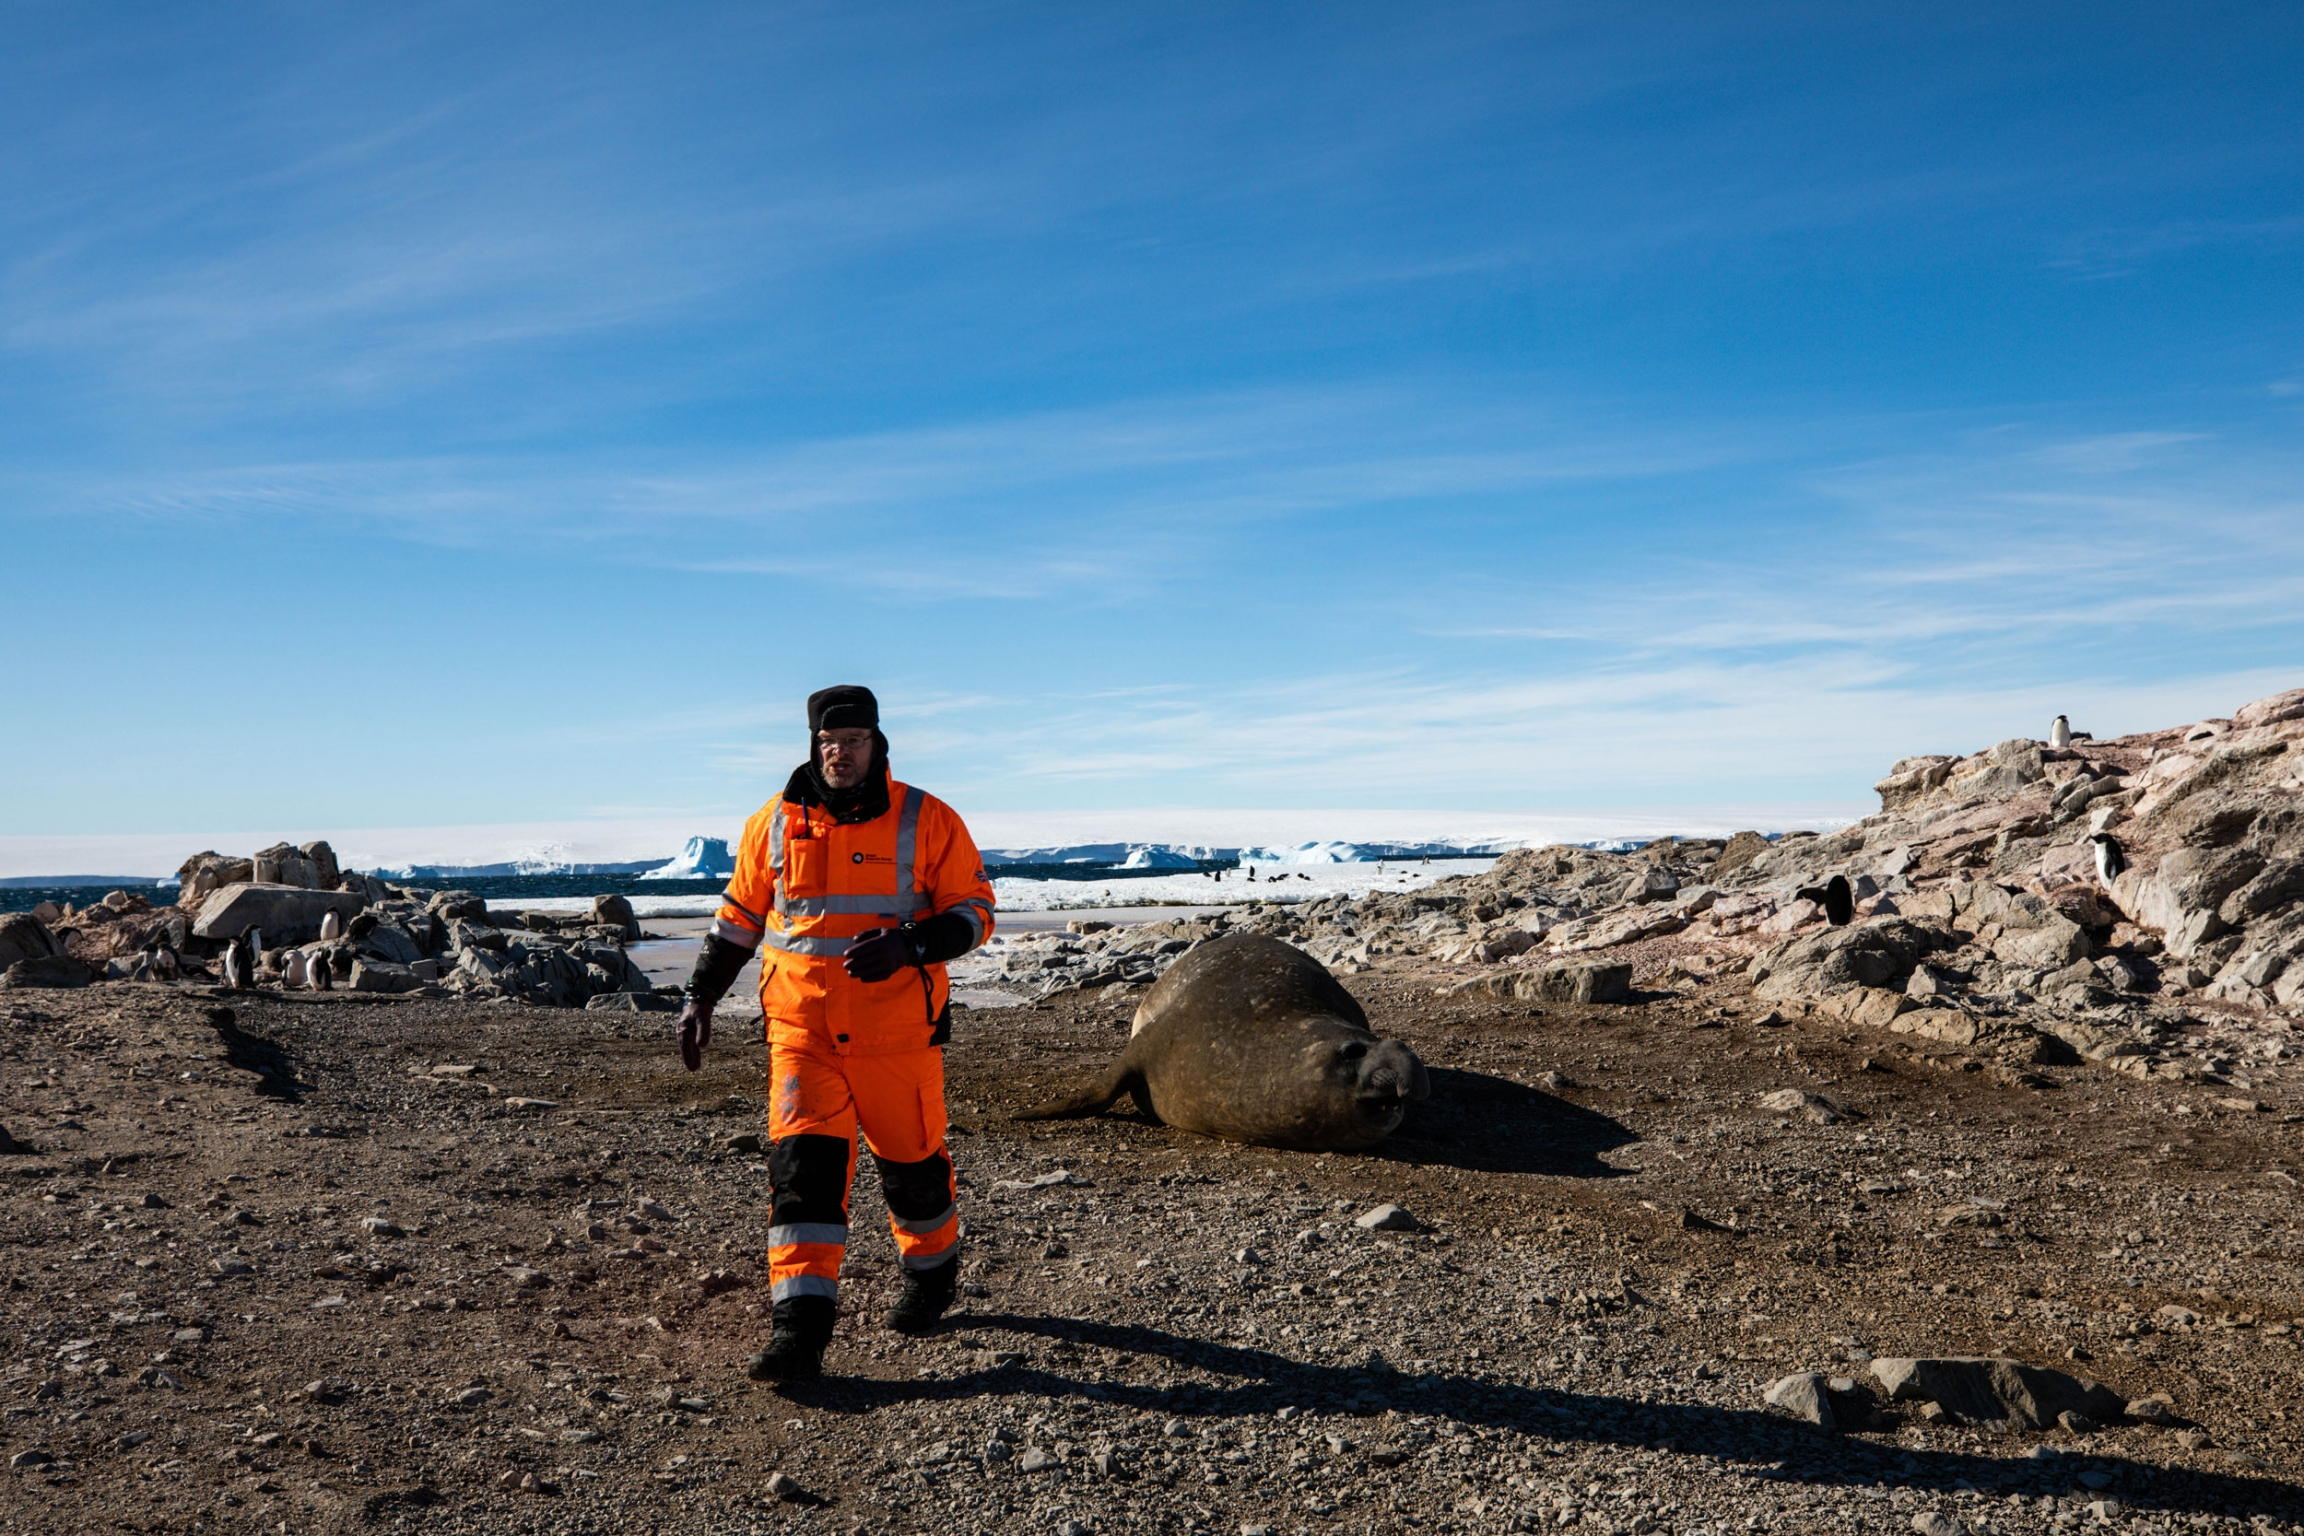 Lars Boehme is shown wearing orange cold-weather outer gear and walks away from an elephant seal laying on the gravel.